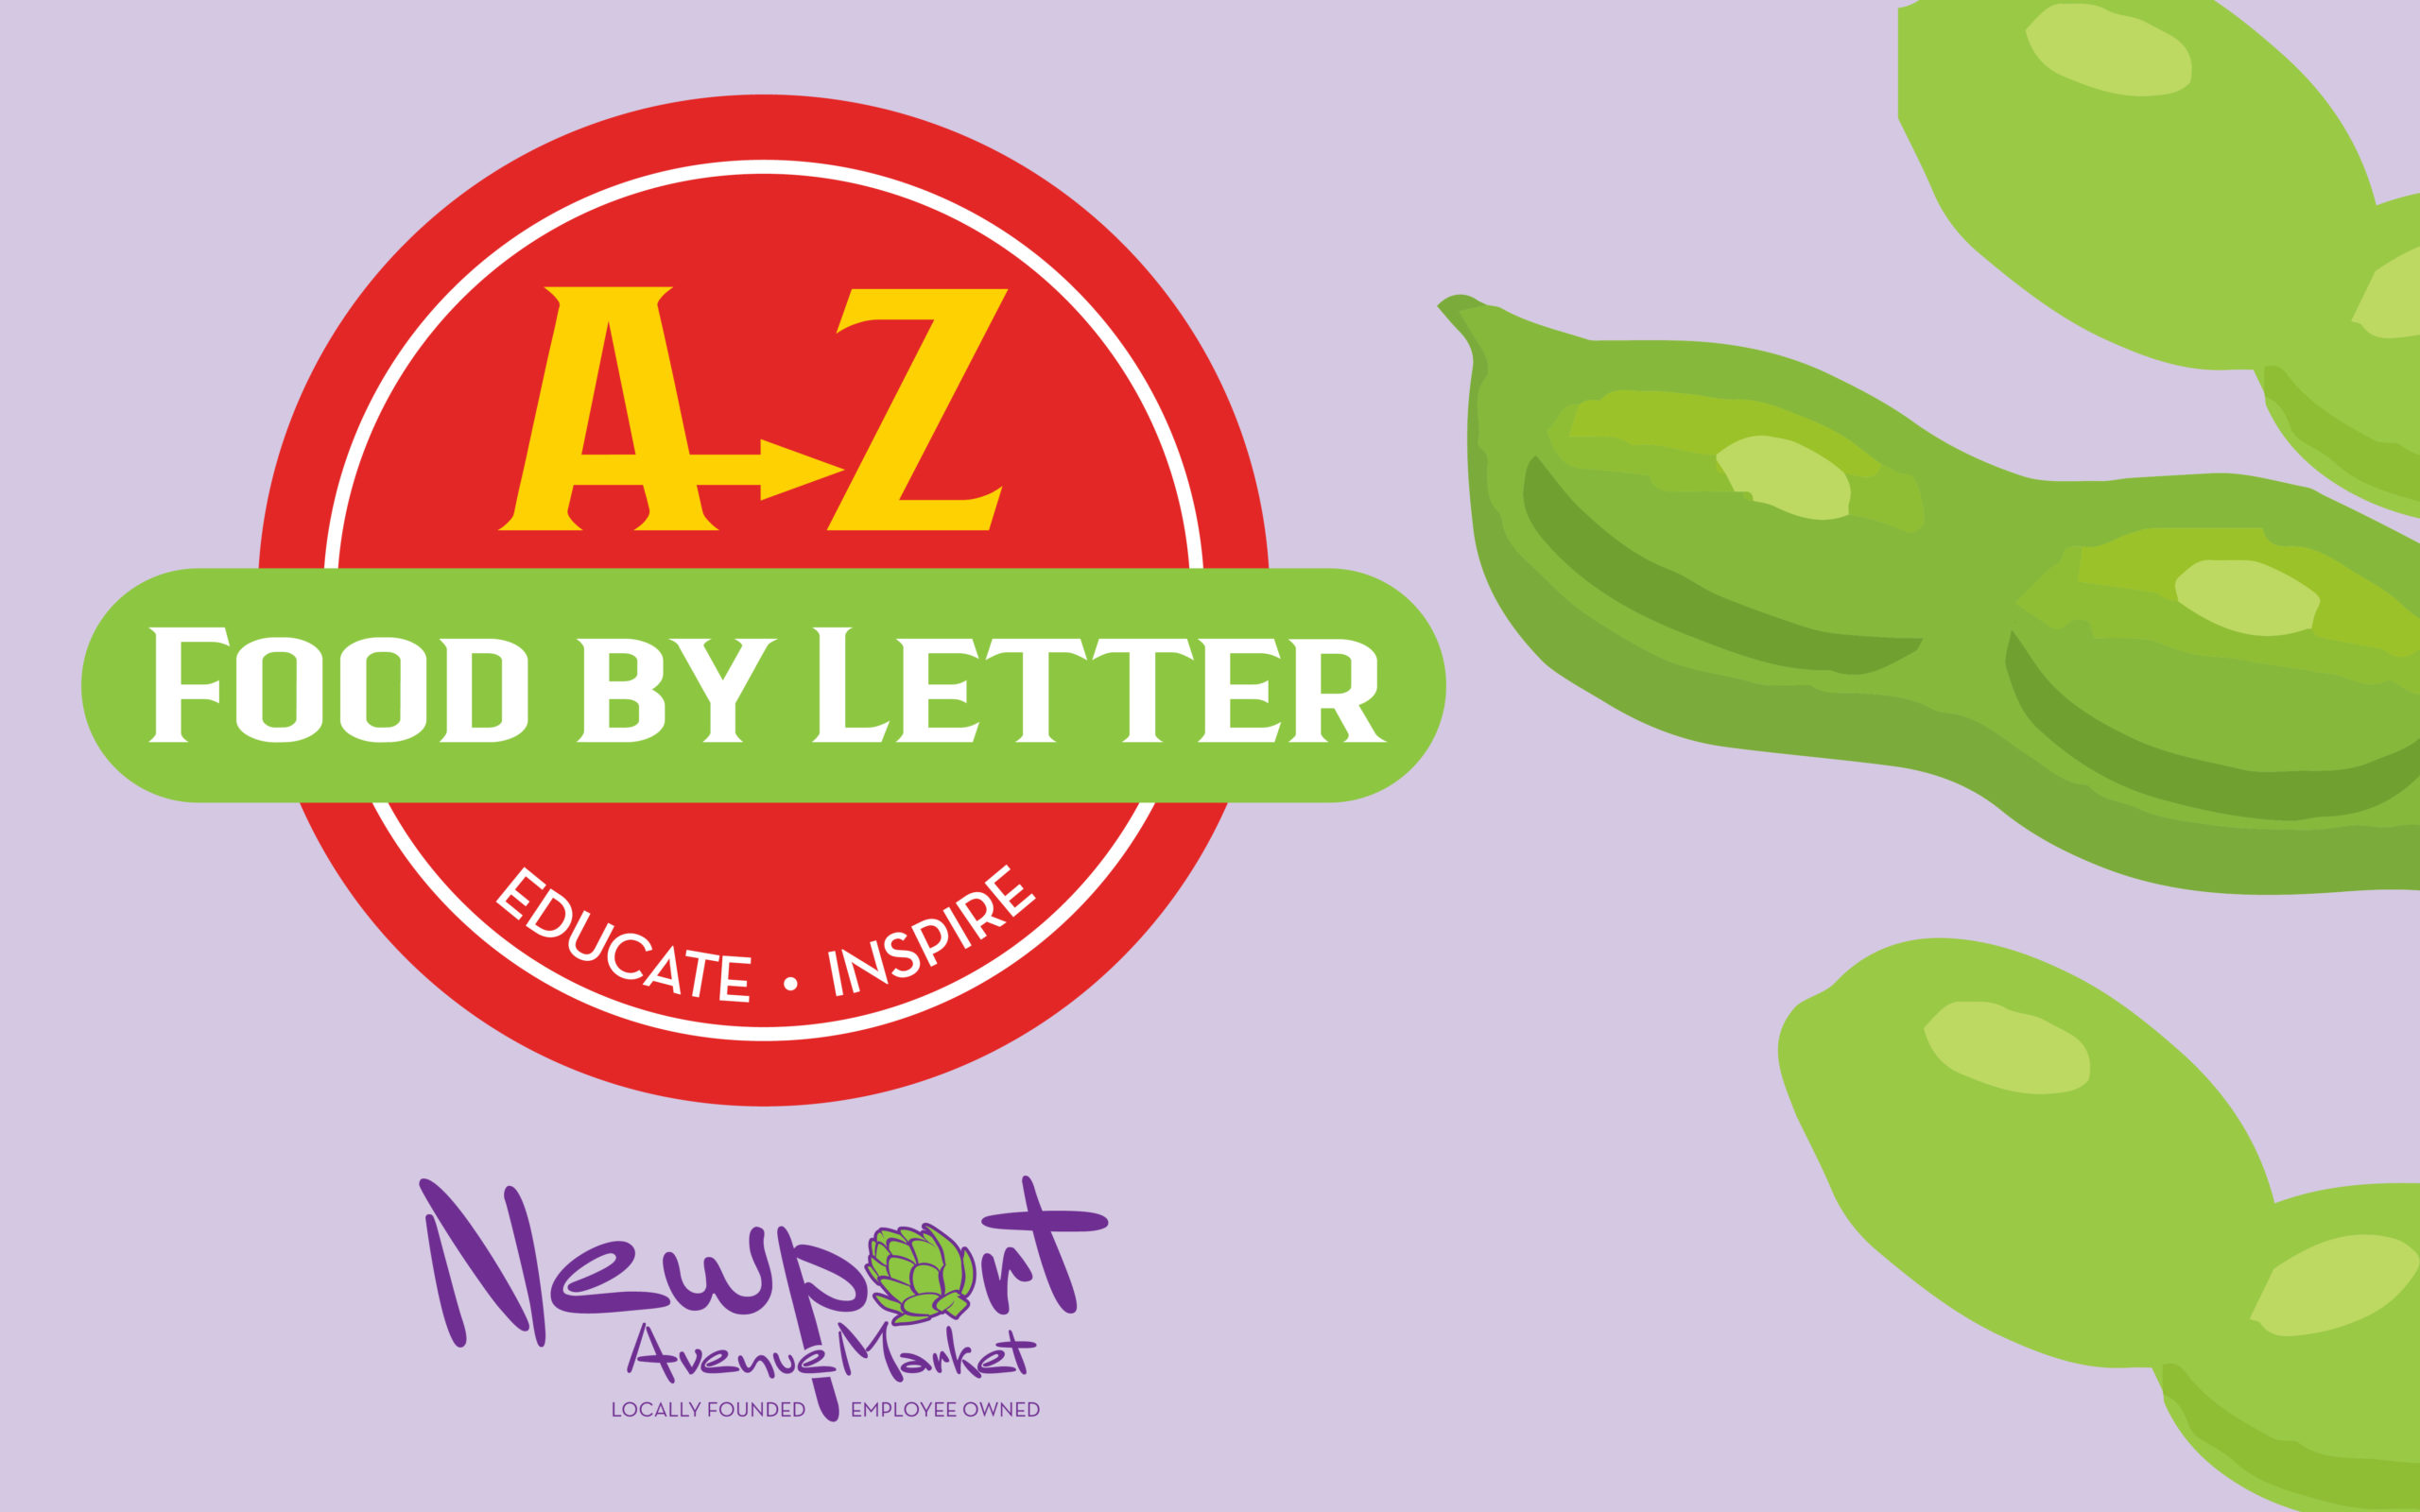 Edamame - A to Z - Food by Letter